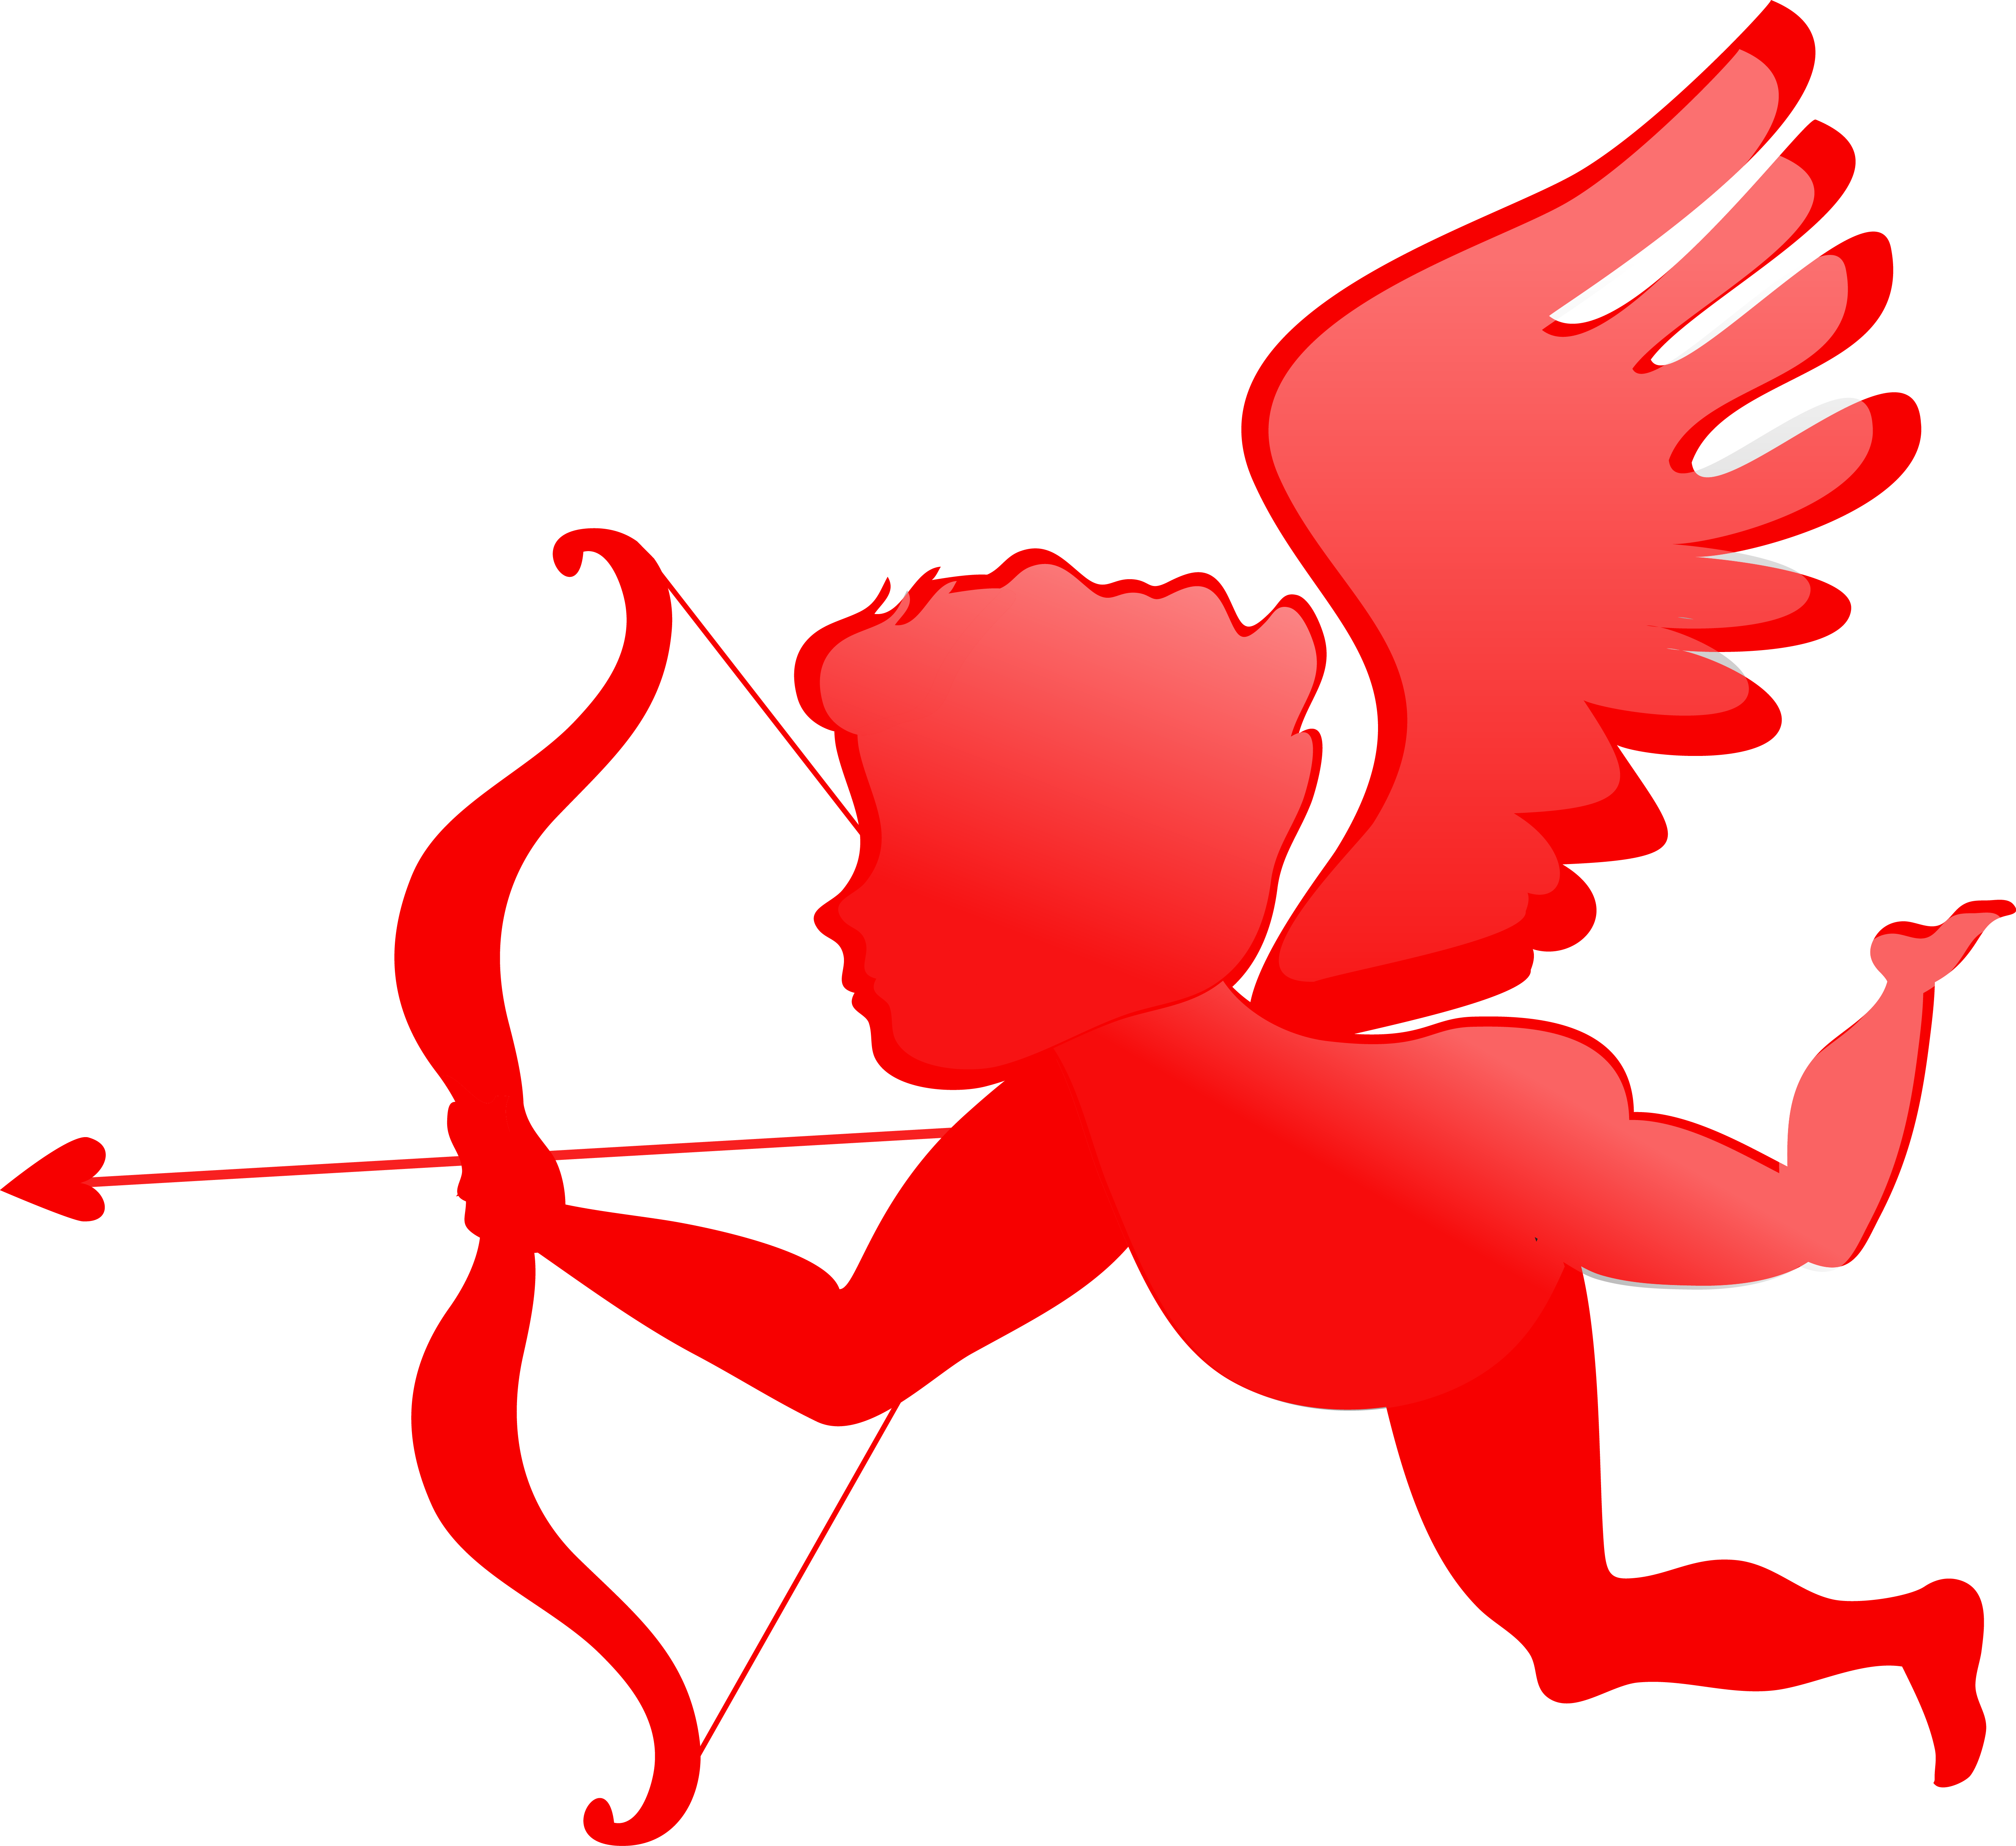 Heart with angel wings clipart clip art library download Cherub Valentines Day Cupid Angel Clip art - Cupid silhouette ... clip art library download